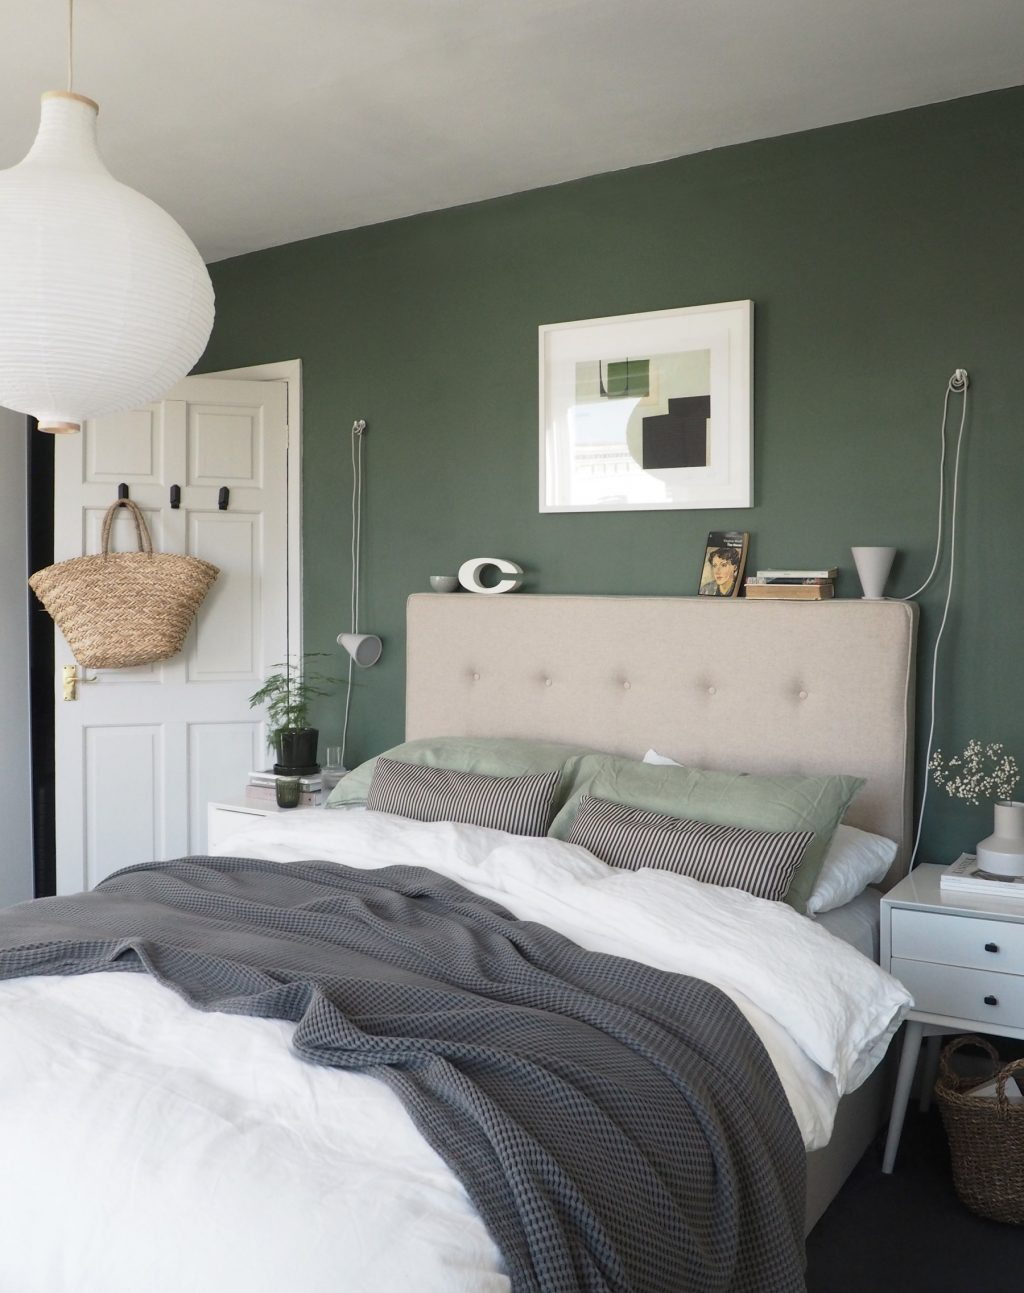 Top 10 Home Decor Trends for 2021